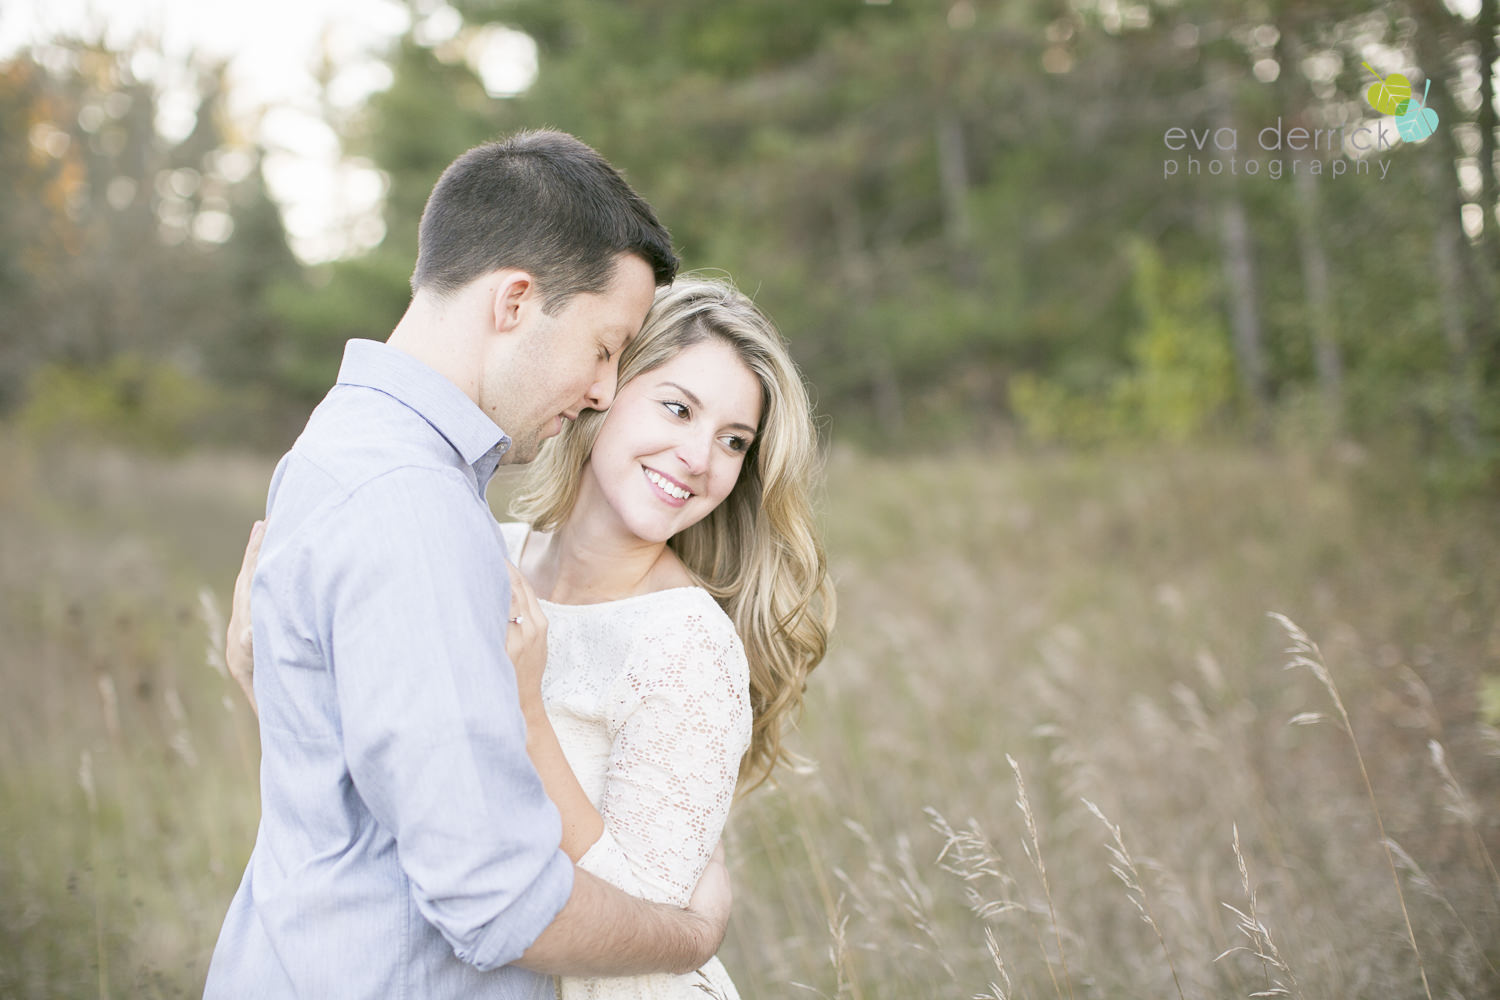 Albion-Hills-Photographer-Engagement-Session-Alanna-Matt-photography-by-Eva-Derrick-Photography-016.JPG